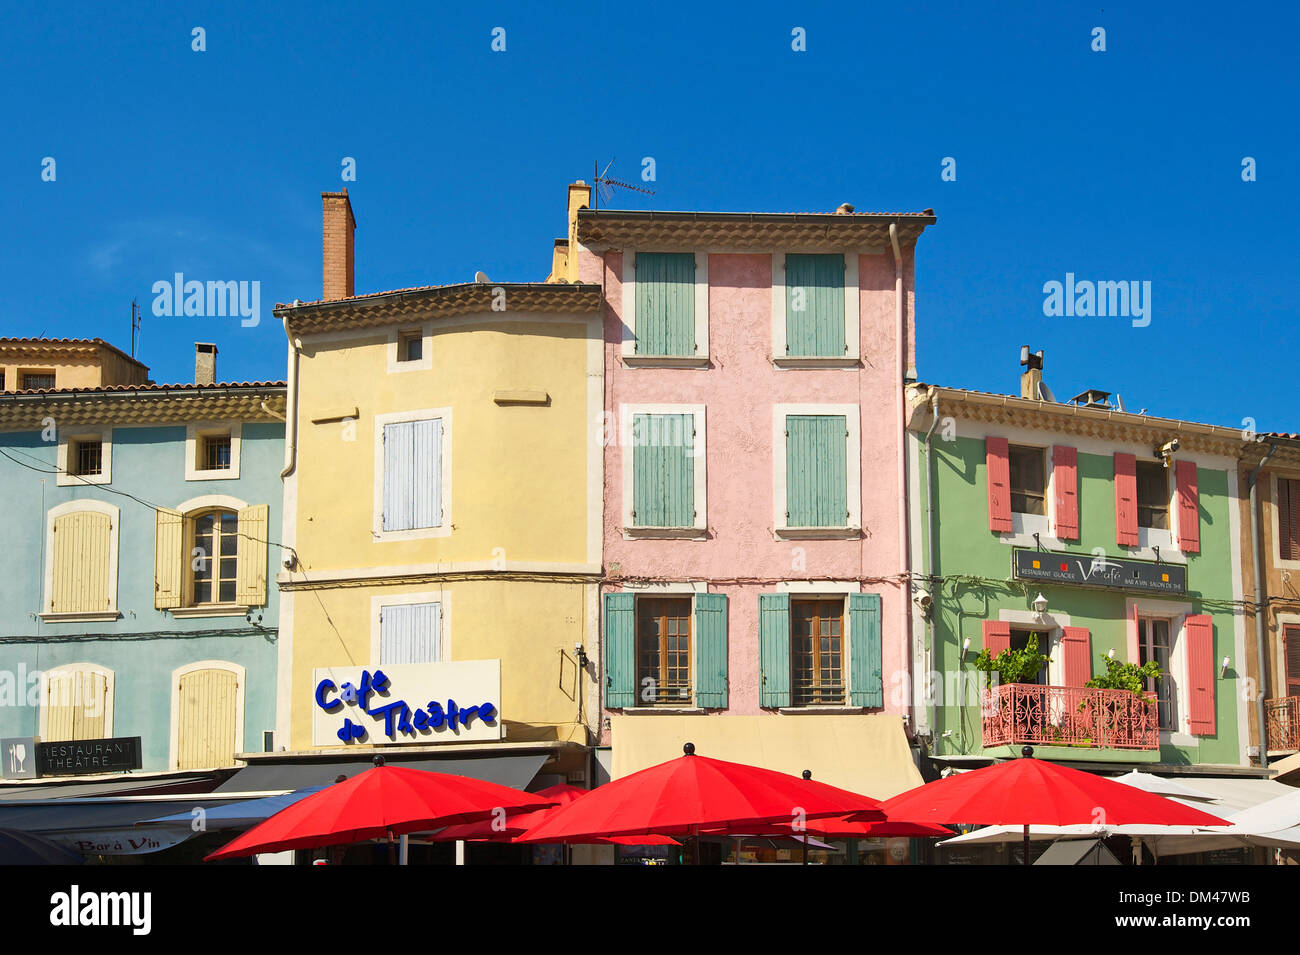 Buy house in france cheap 28 images buy house in cheap for Is it cheaper to build or buy a house